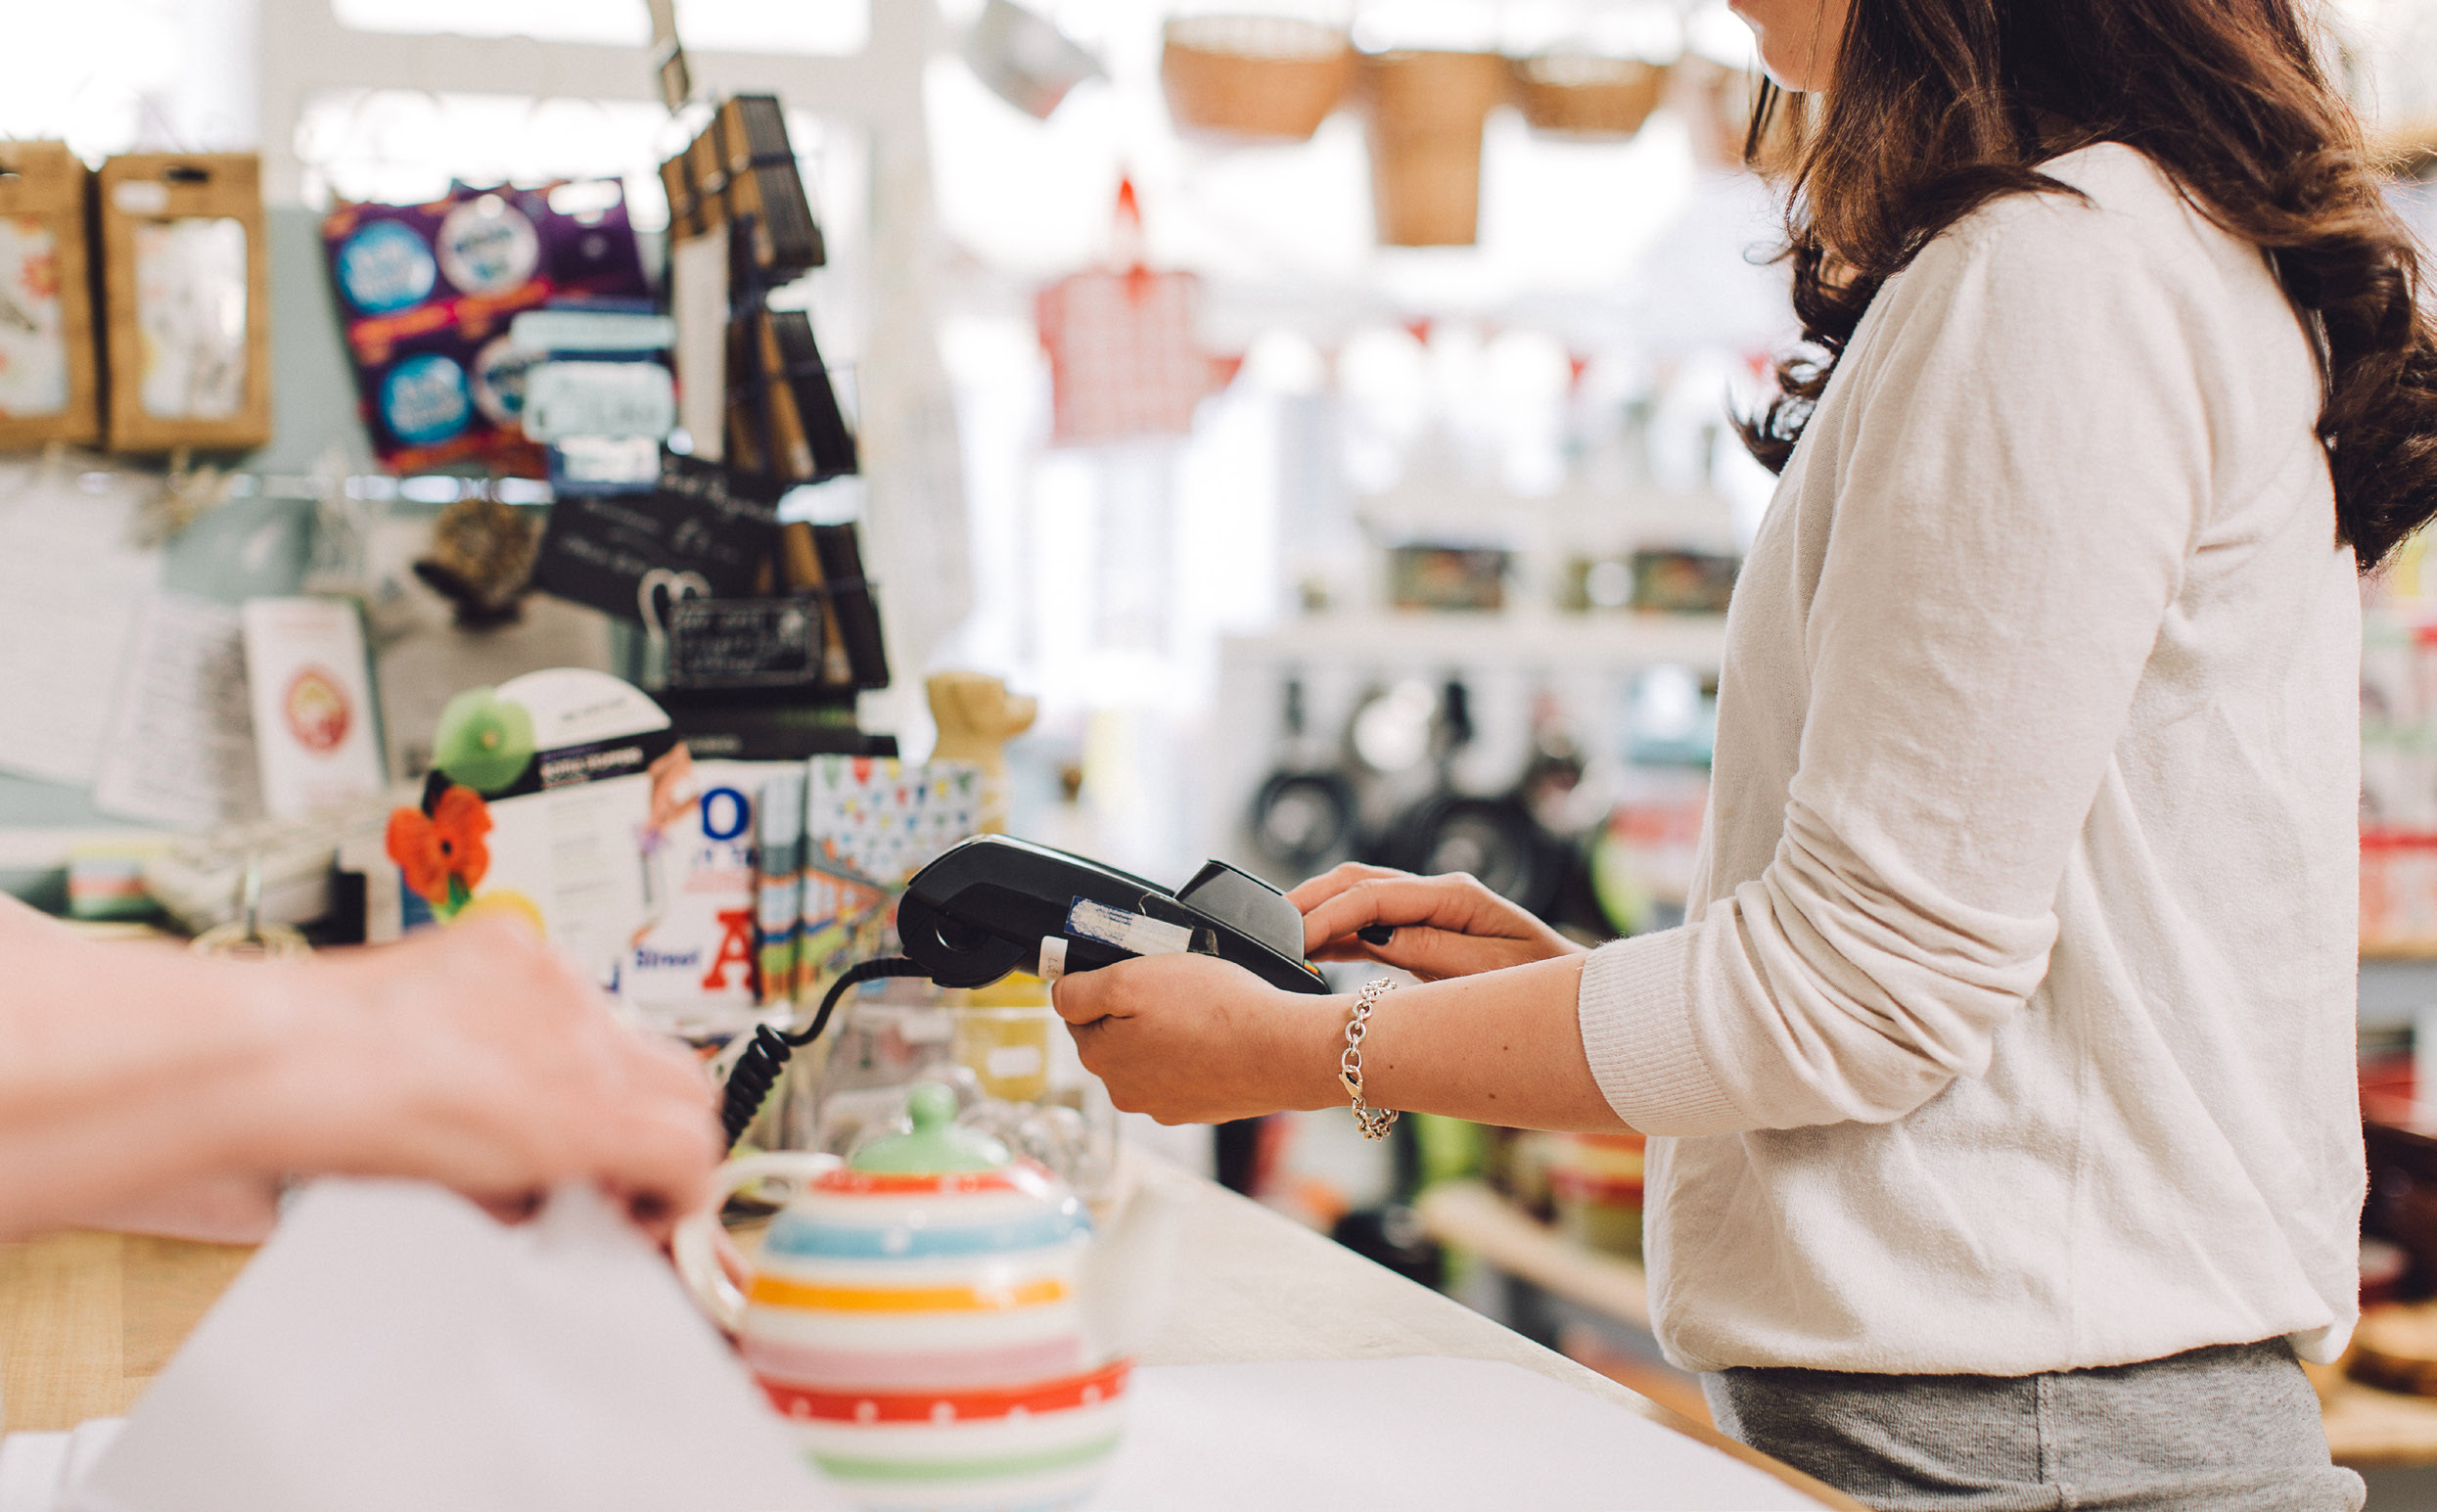 More payments regulations are on the way. Independent business owners need to prepare for the change. British Independent Retailers Association